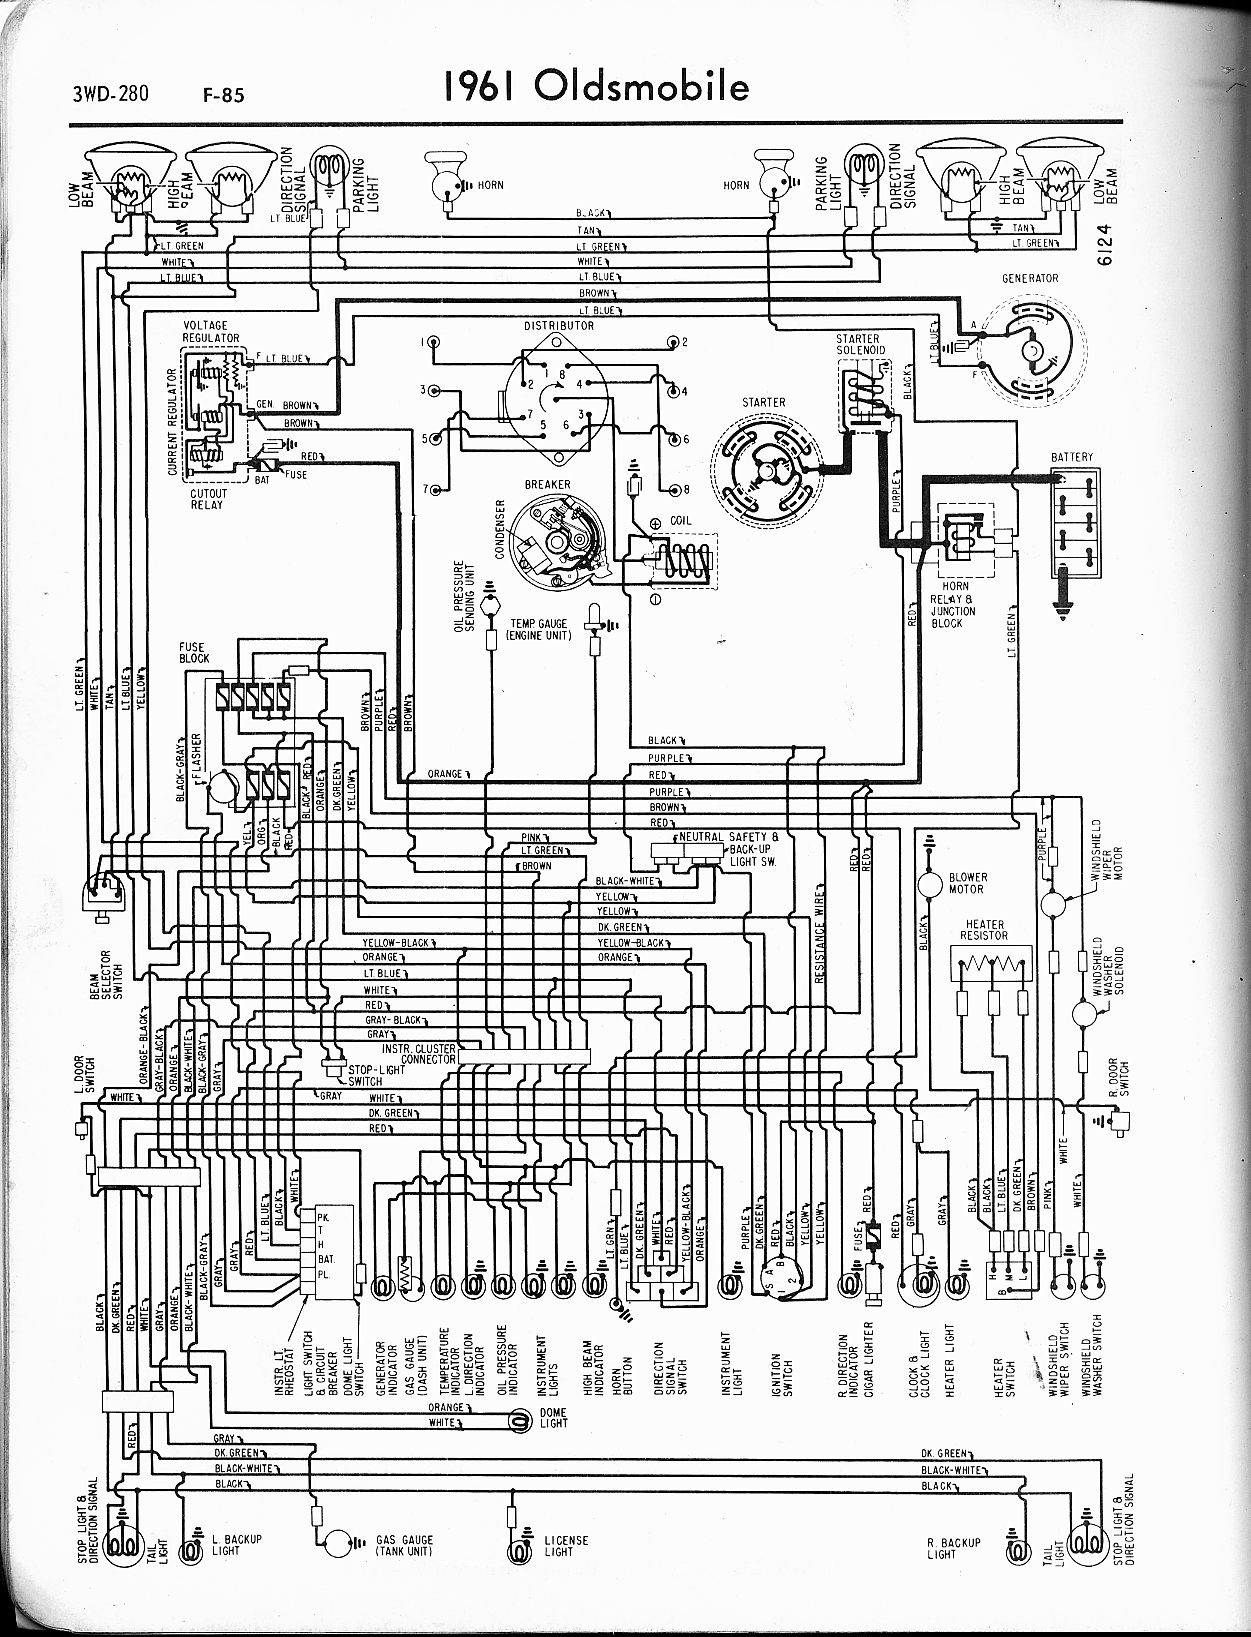 1960 Oldsmobile Wiring Diagram Real 1950 Dodge Truck Diagrams The Old Car Manual Project Rh Oldcarmanualproject Com 1998